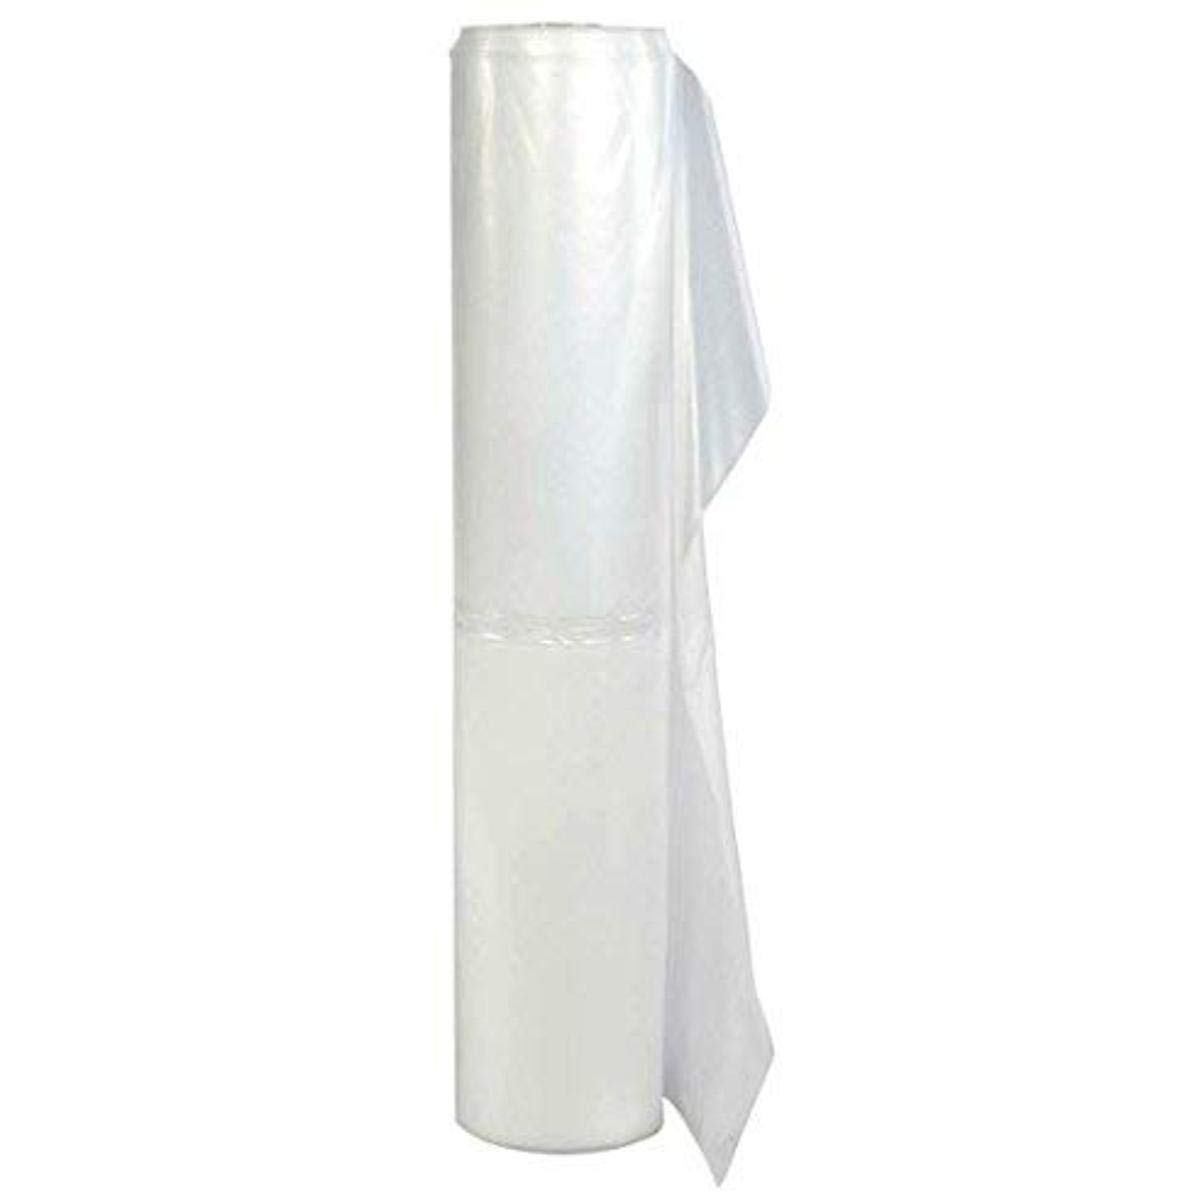 TRM Manufacturing FR420 Weatherall 4 Mil Flame Retardant Clear Poly Plastic Sheeting, 1 Box of 100 Feet Long by 20 Feet Wide